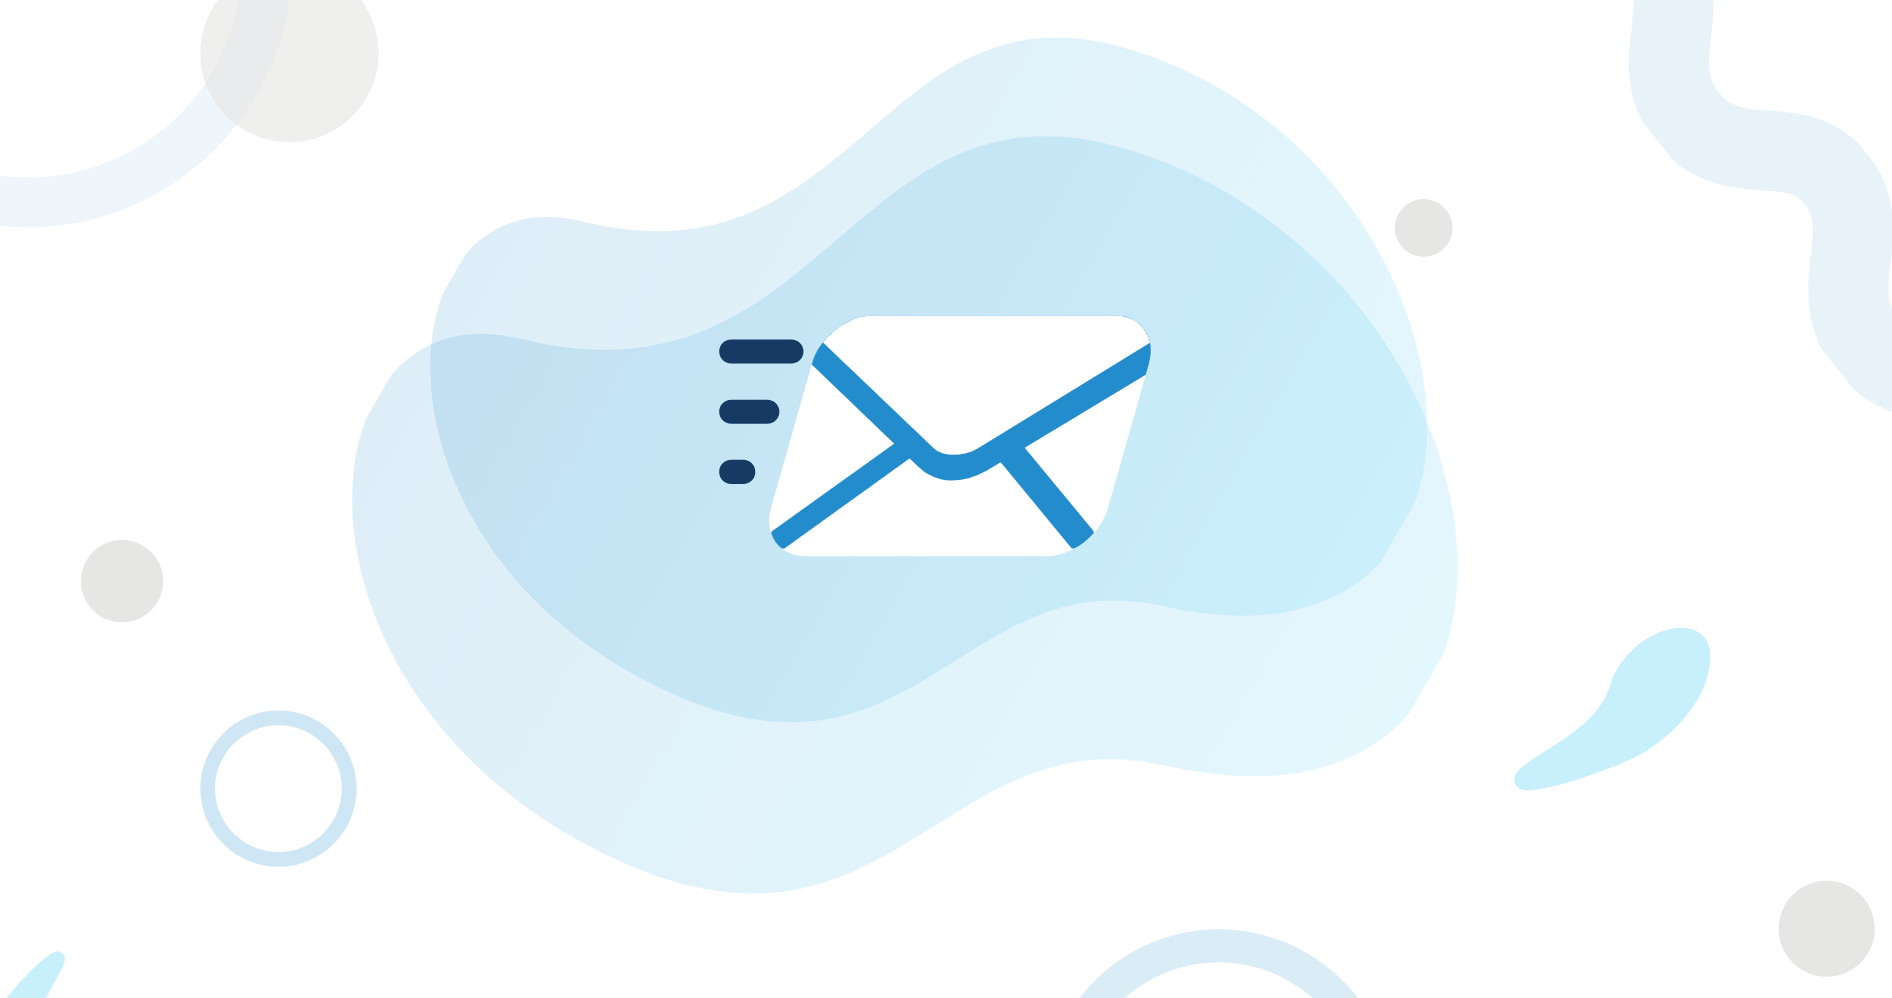 5 steps to improve email deliverability